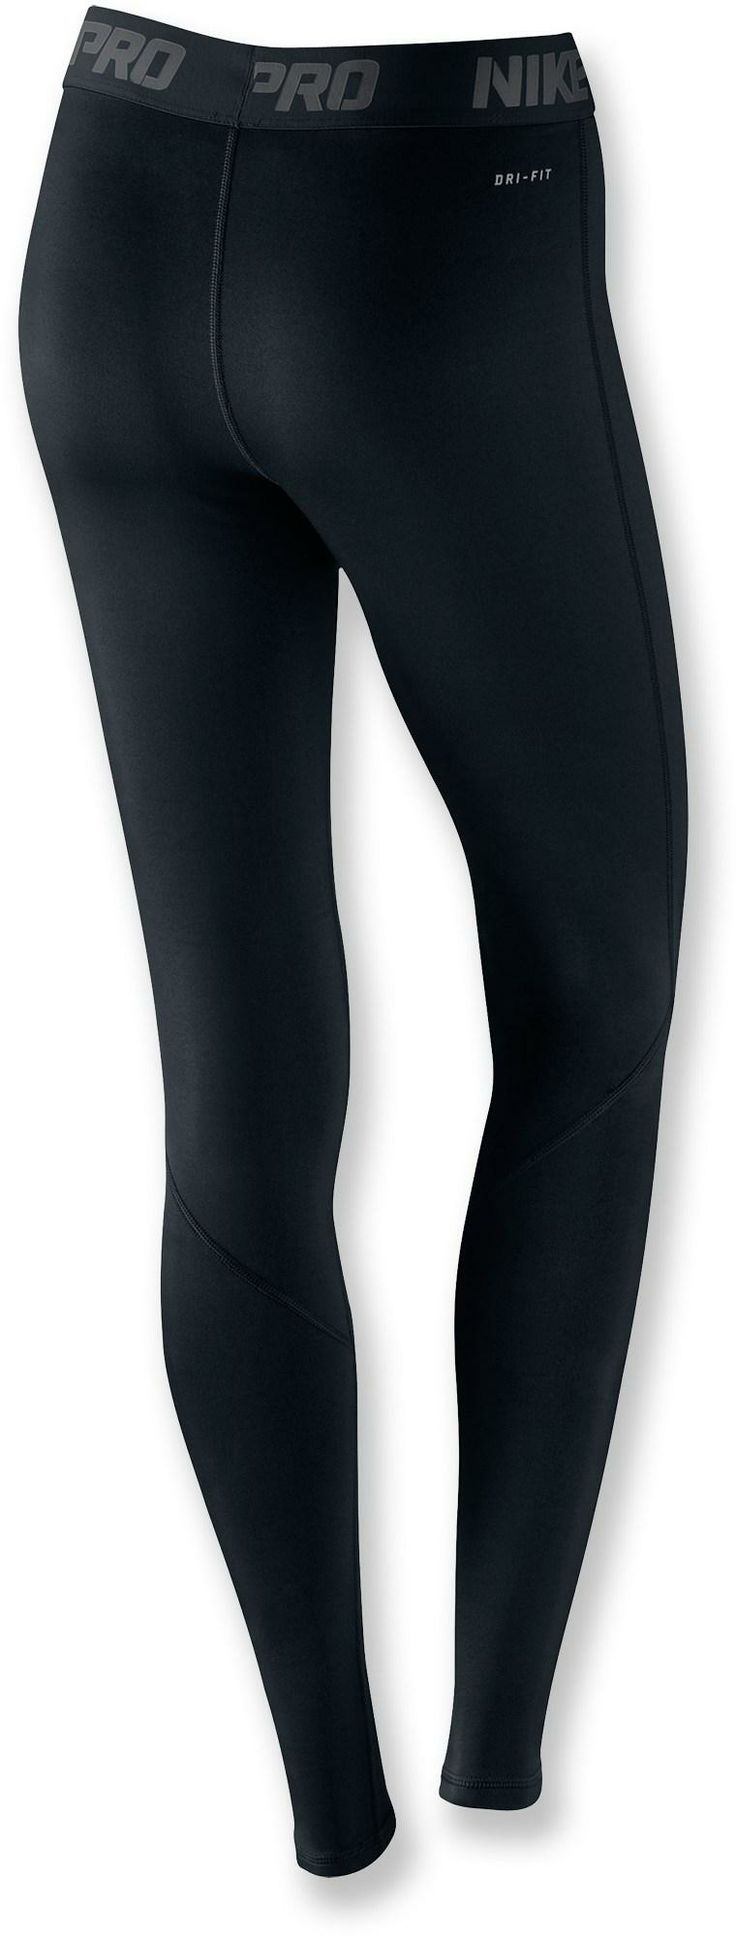 The Nike Pro Hyperwarm III tights deliver reliable warmth as a base layer for winter camping or skiing expeditions. #REIGifts